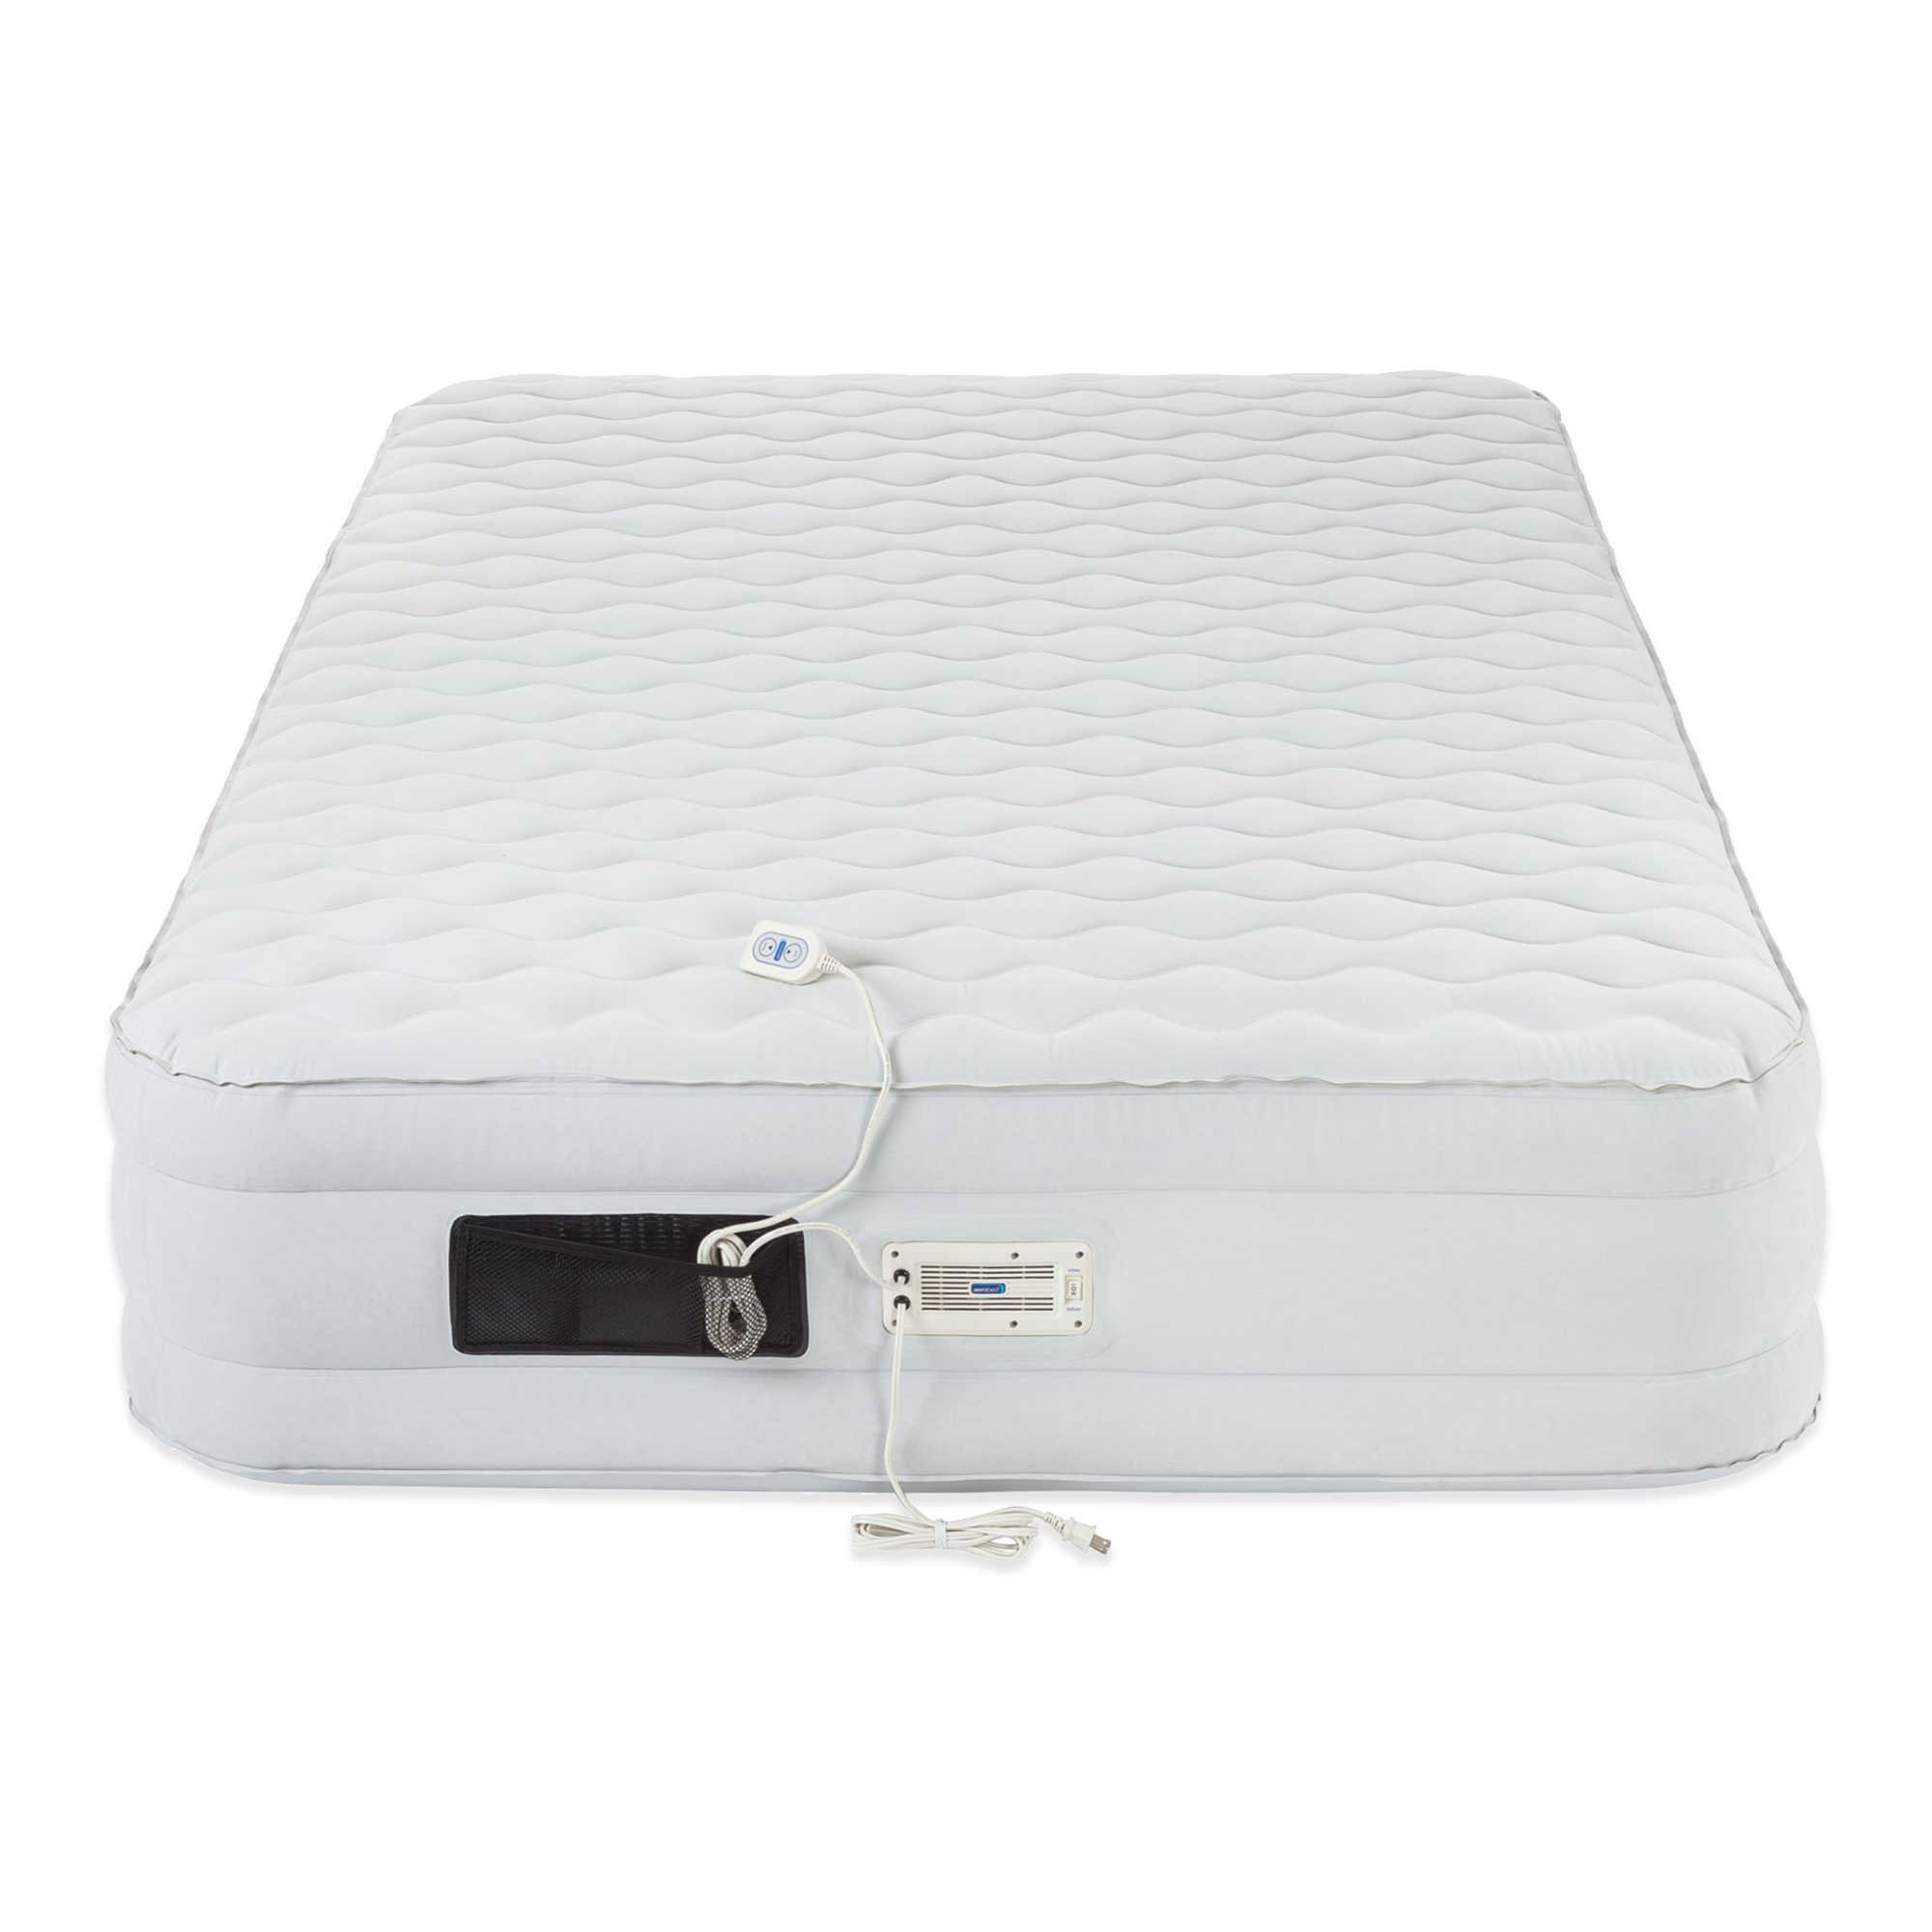 AeroBed® Luxury Pillow Top 16-Inch Queen Air Mattress